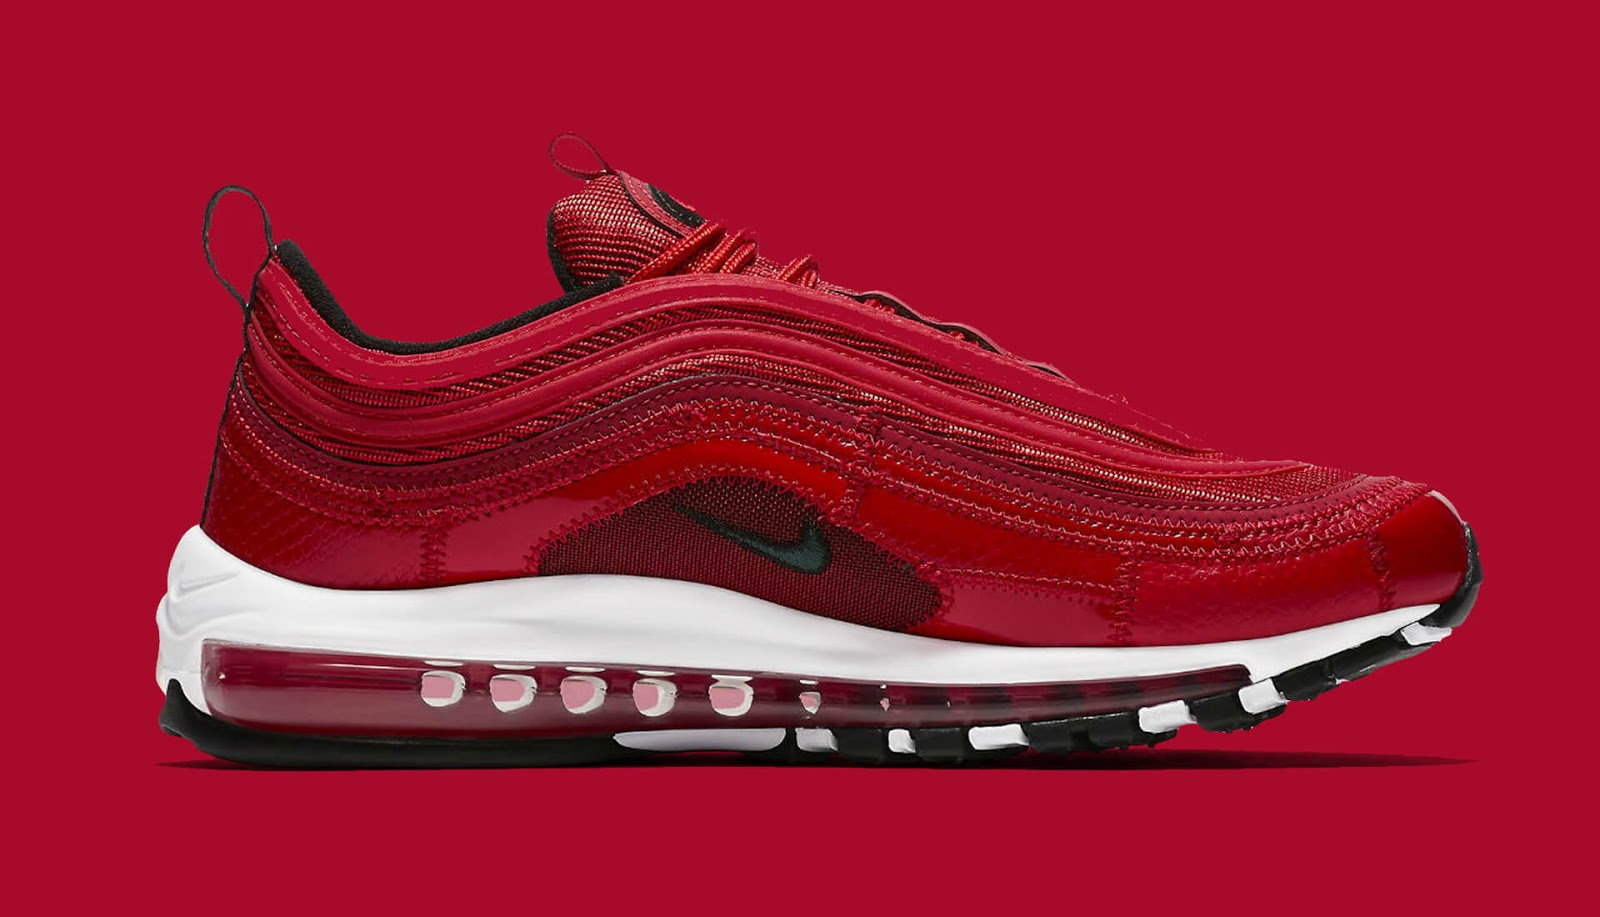 Nike Air Max 97 Bottes Rouges Cr7